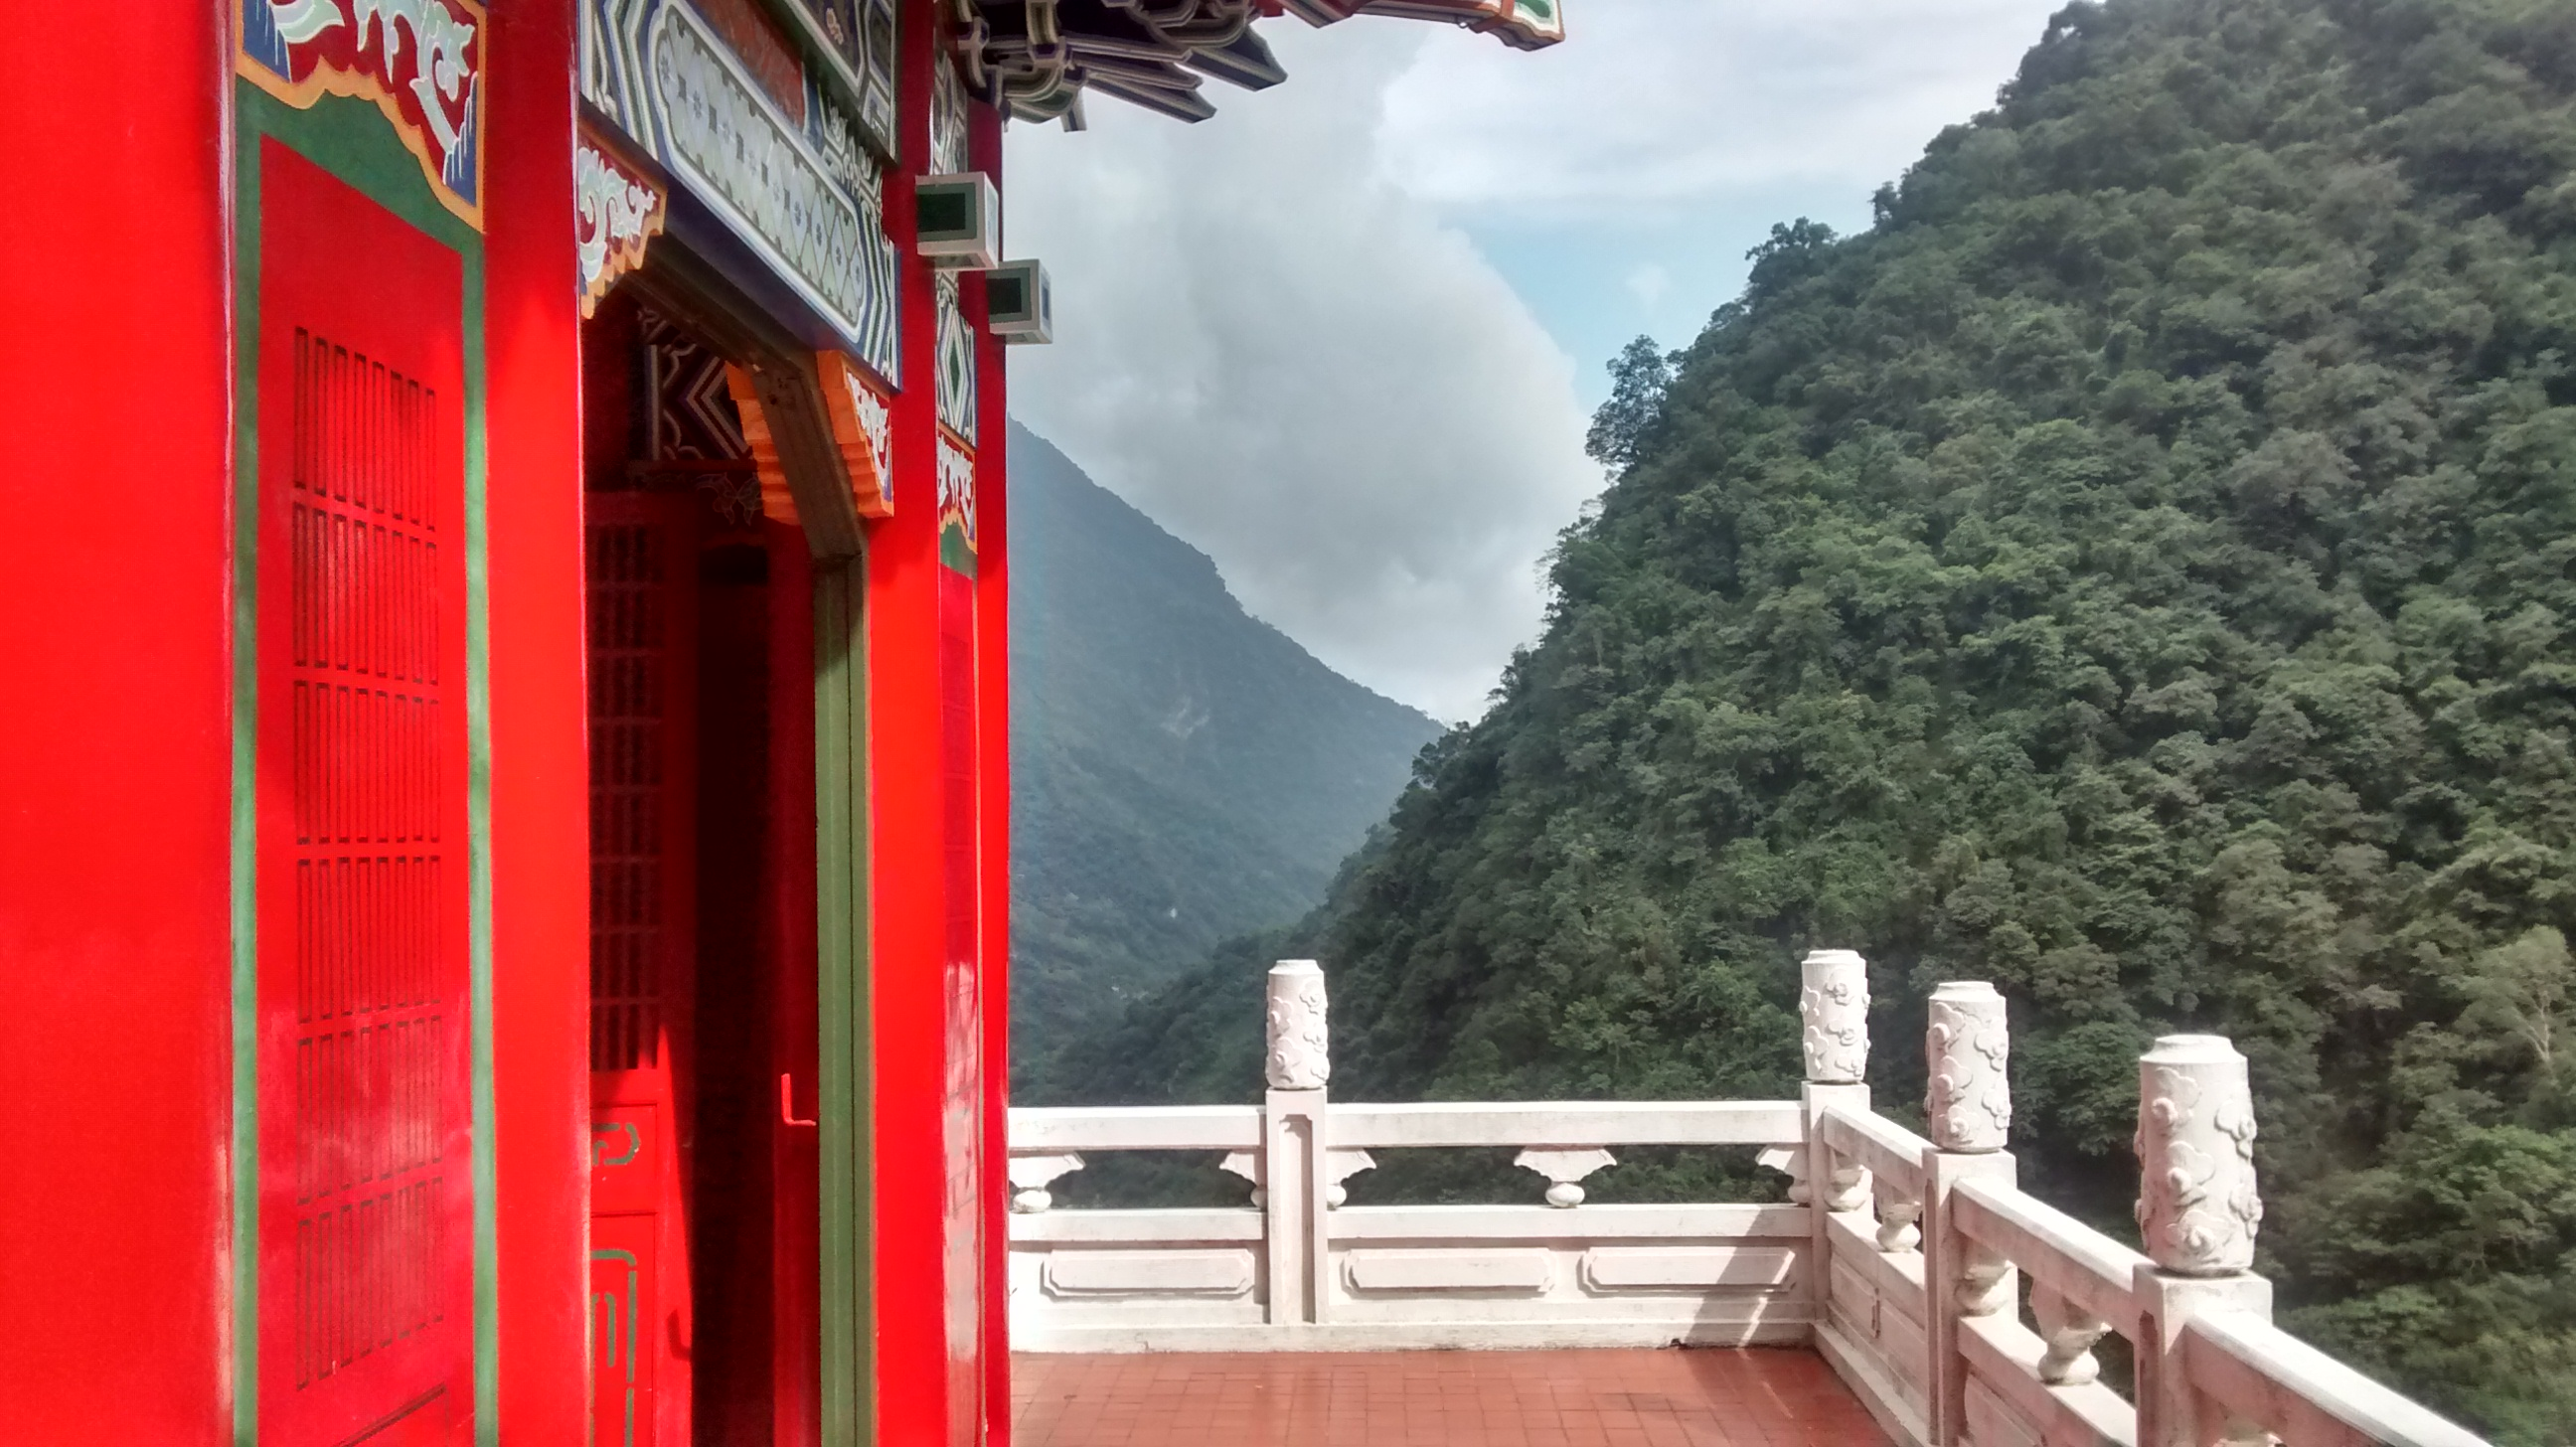 From a Buddhist Temple at Taroko Gorge